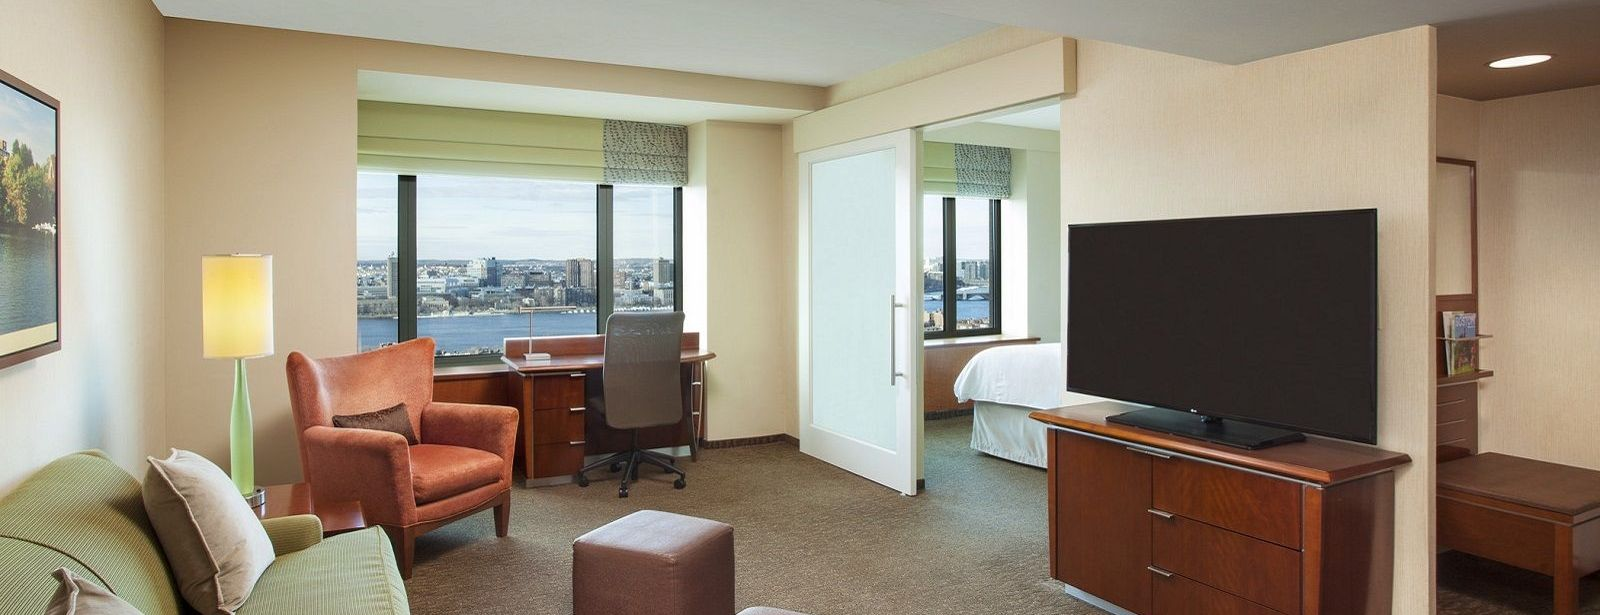 Sheraton Boston Hotel Club Executive Suite